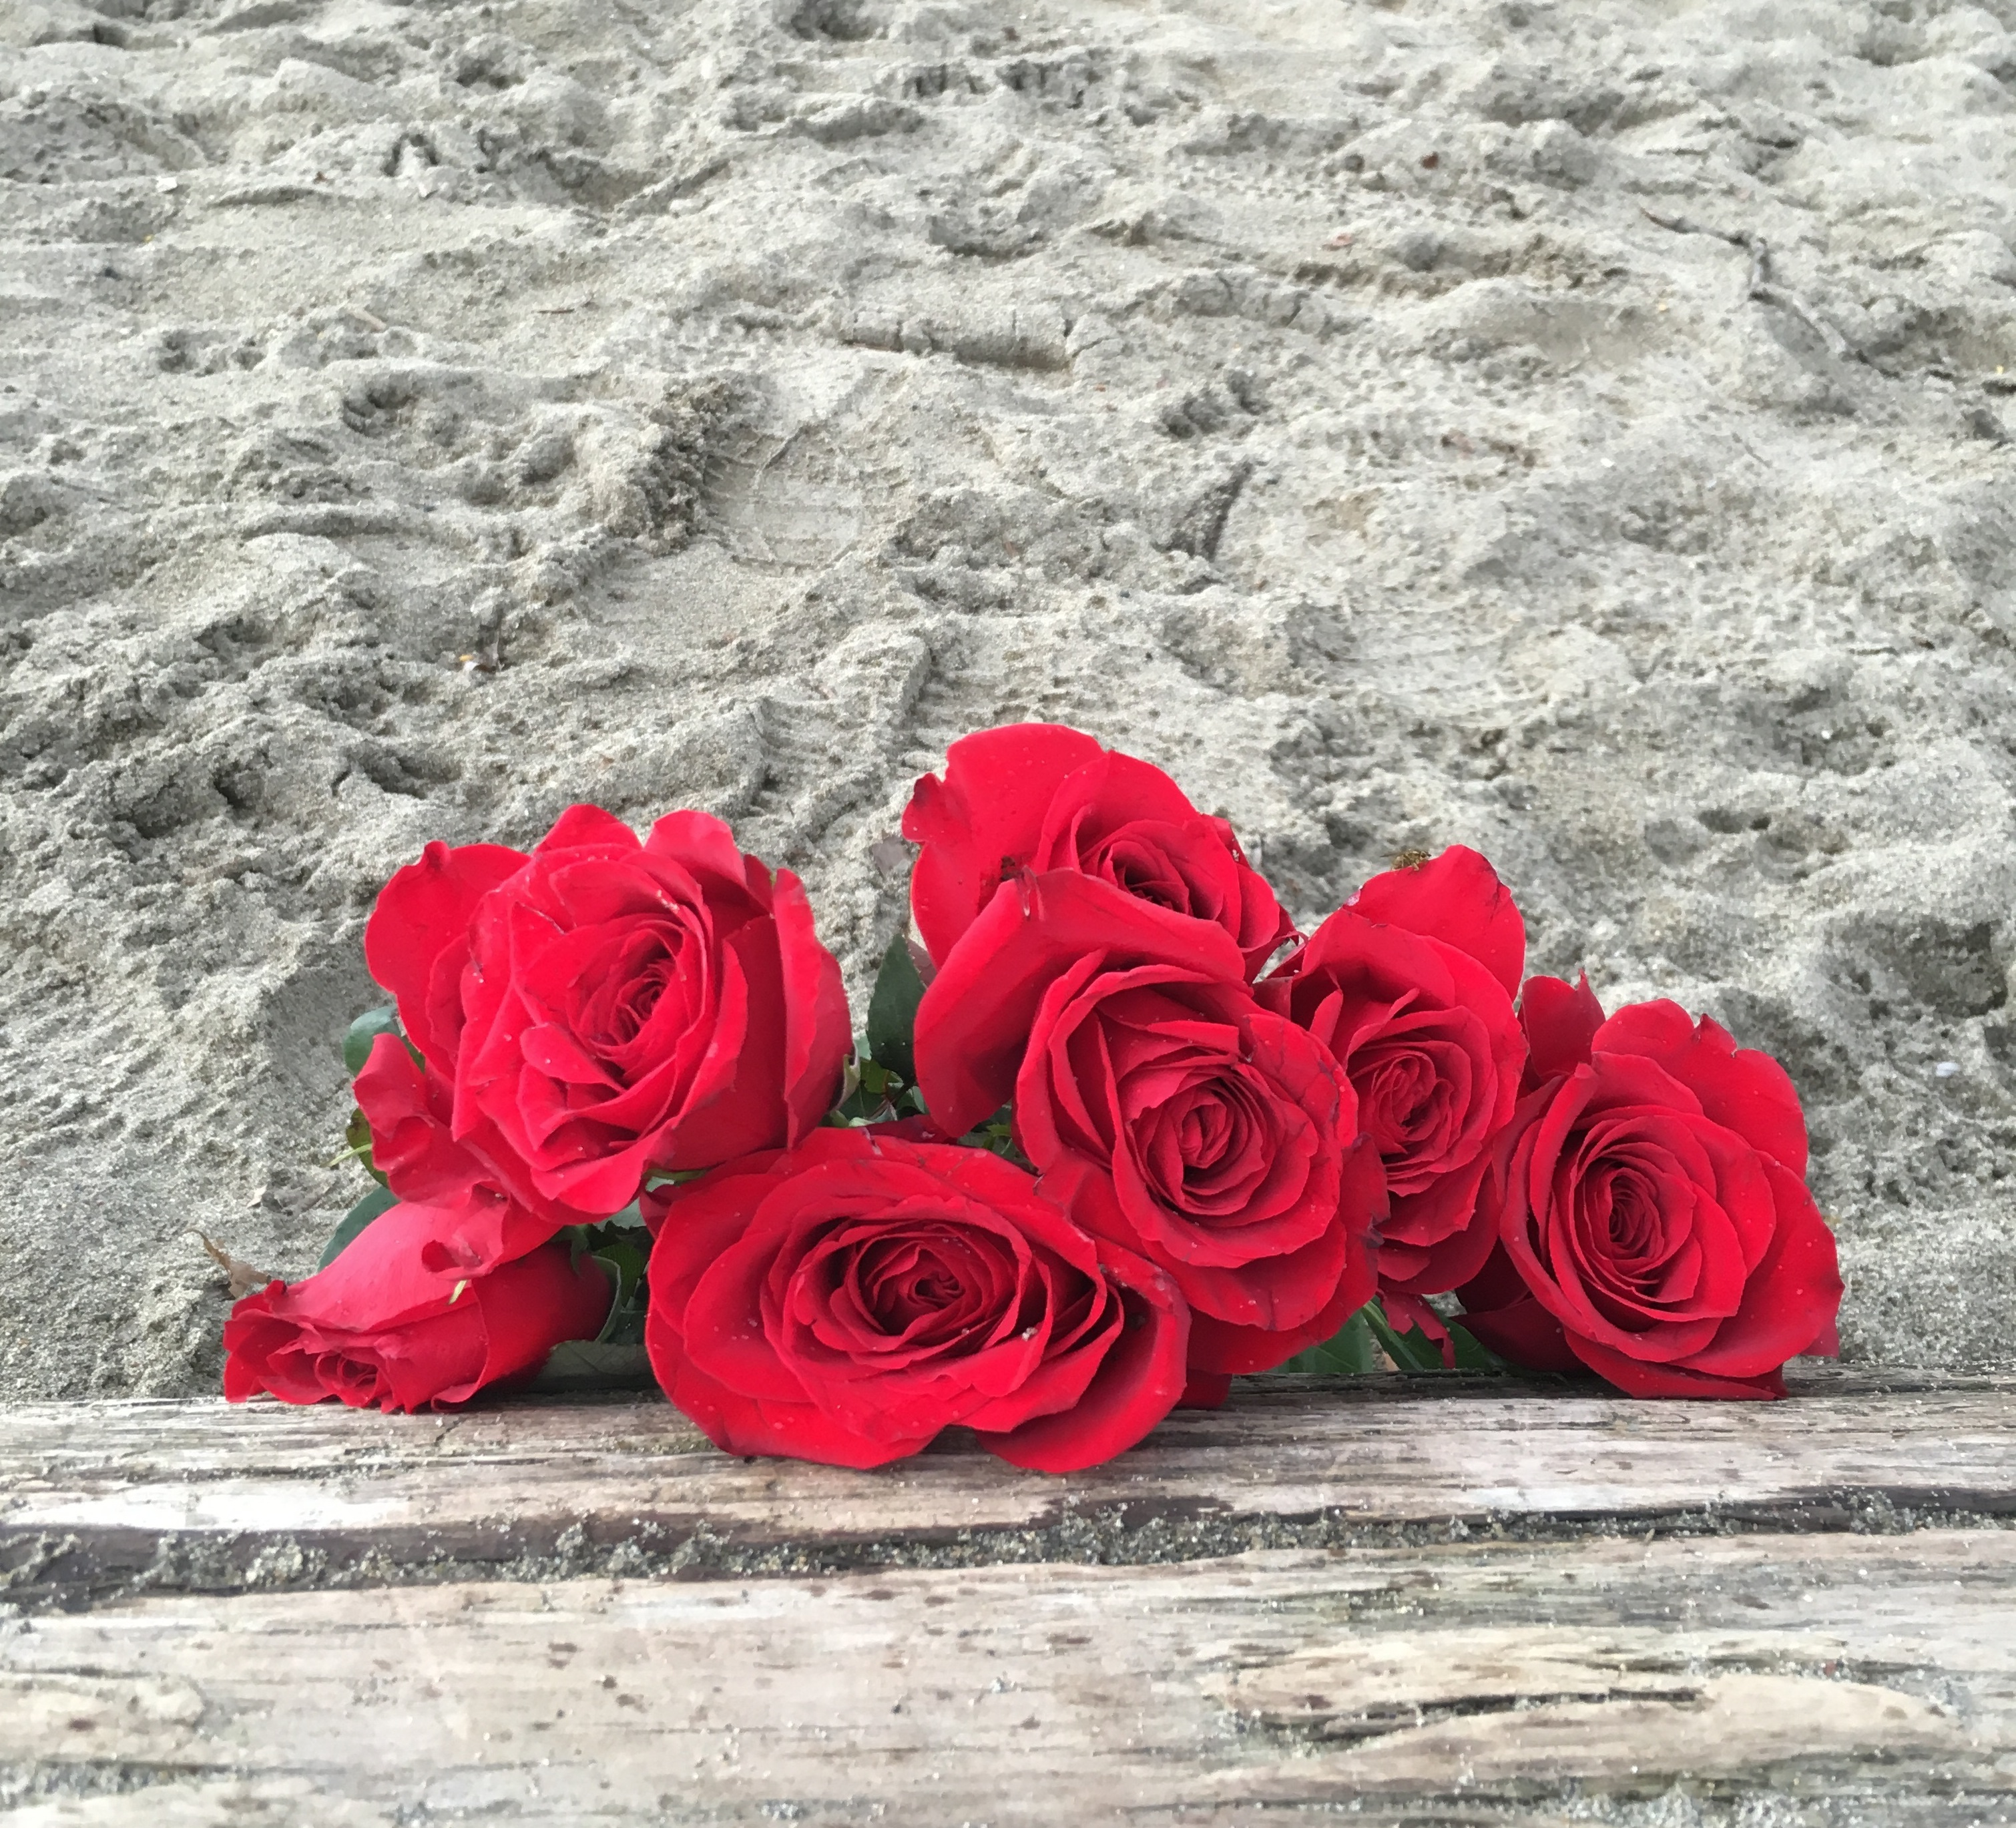 A bouquet of roses lean against a sun-bleached log on an empty beach.